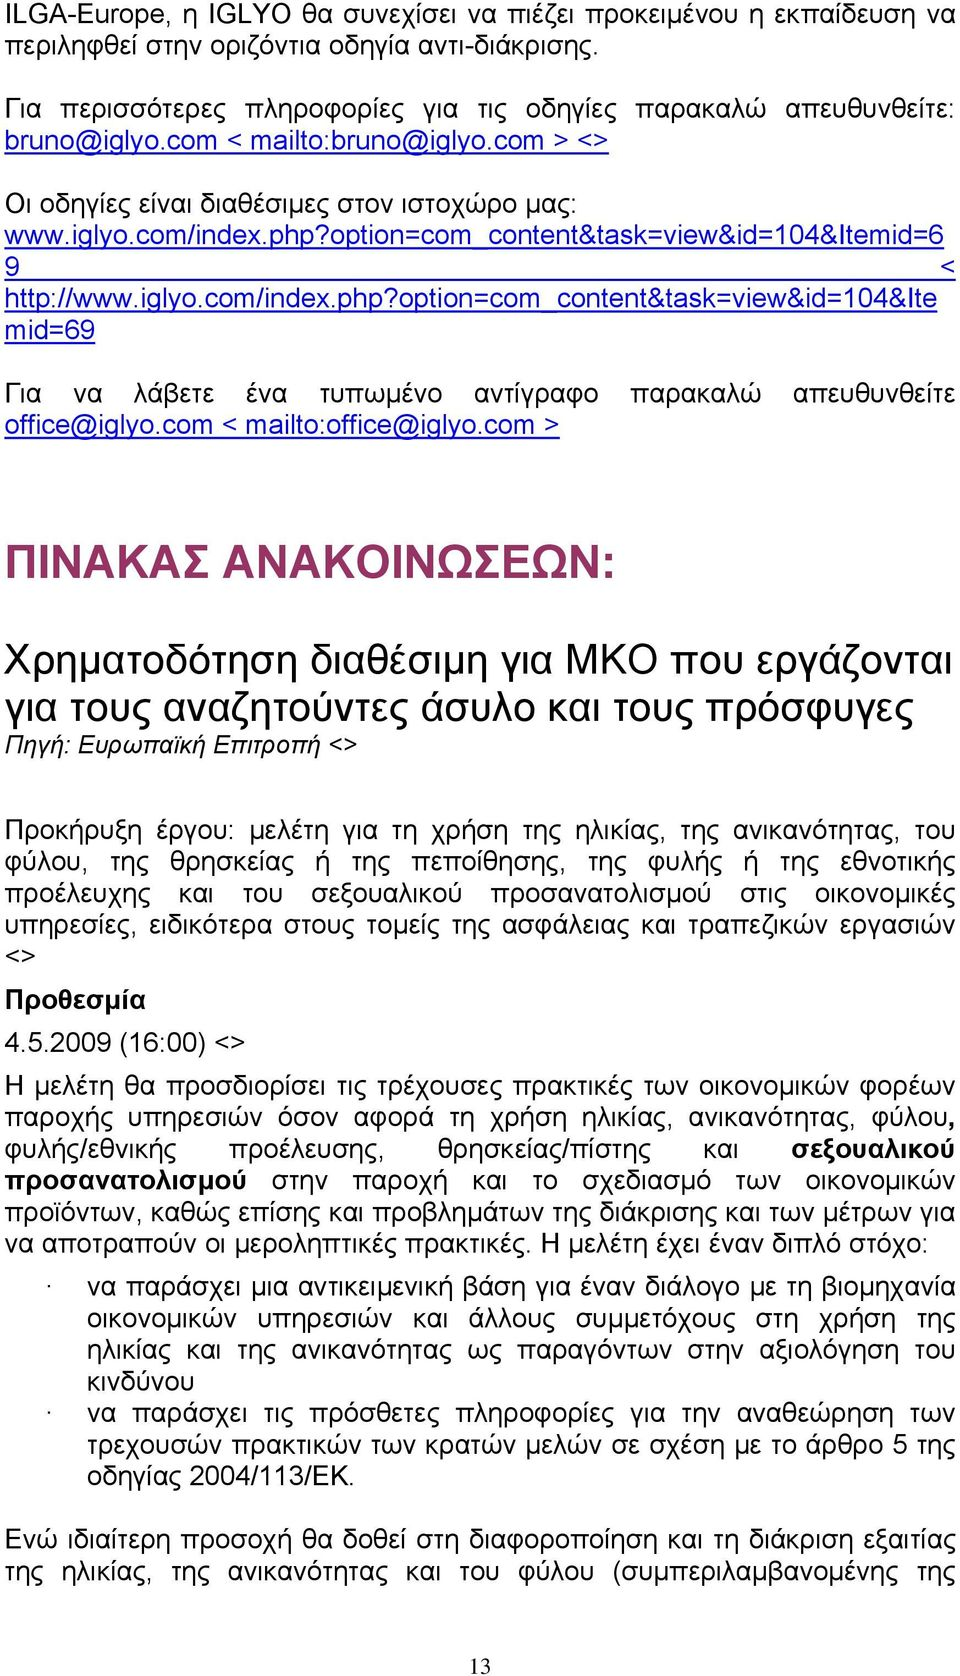 option=com_content&task=view&id=104&itemid=6 9 < http://www.iglyo.com/index.php?option=com_content&task=view&id=104&ite mid=69 Για να λάβετε ένα τυπωμένο αντίγραφο παρακαλώ απευθυνθείτε office@iglyo.